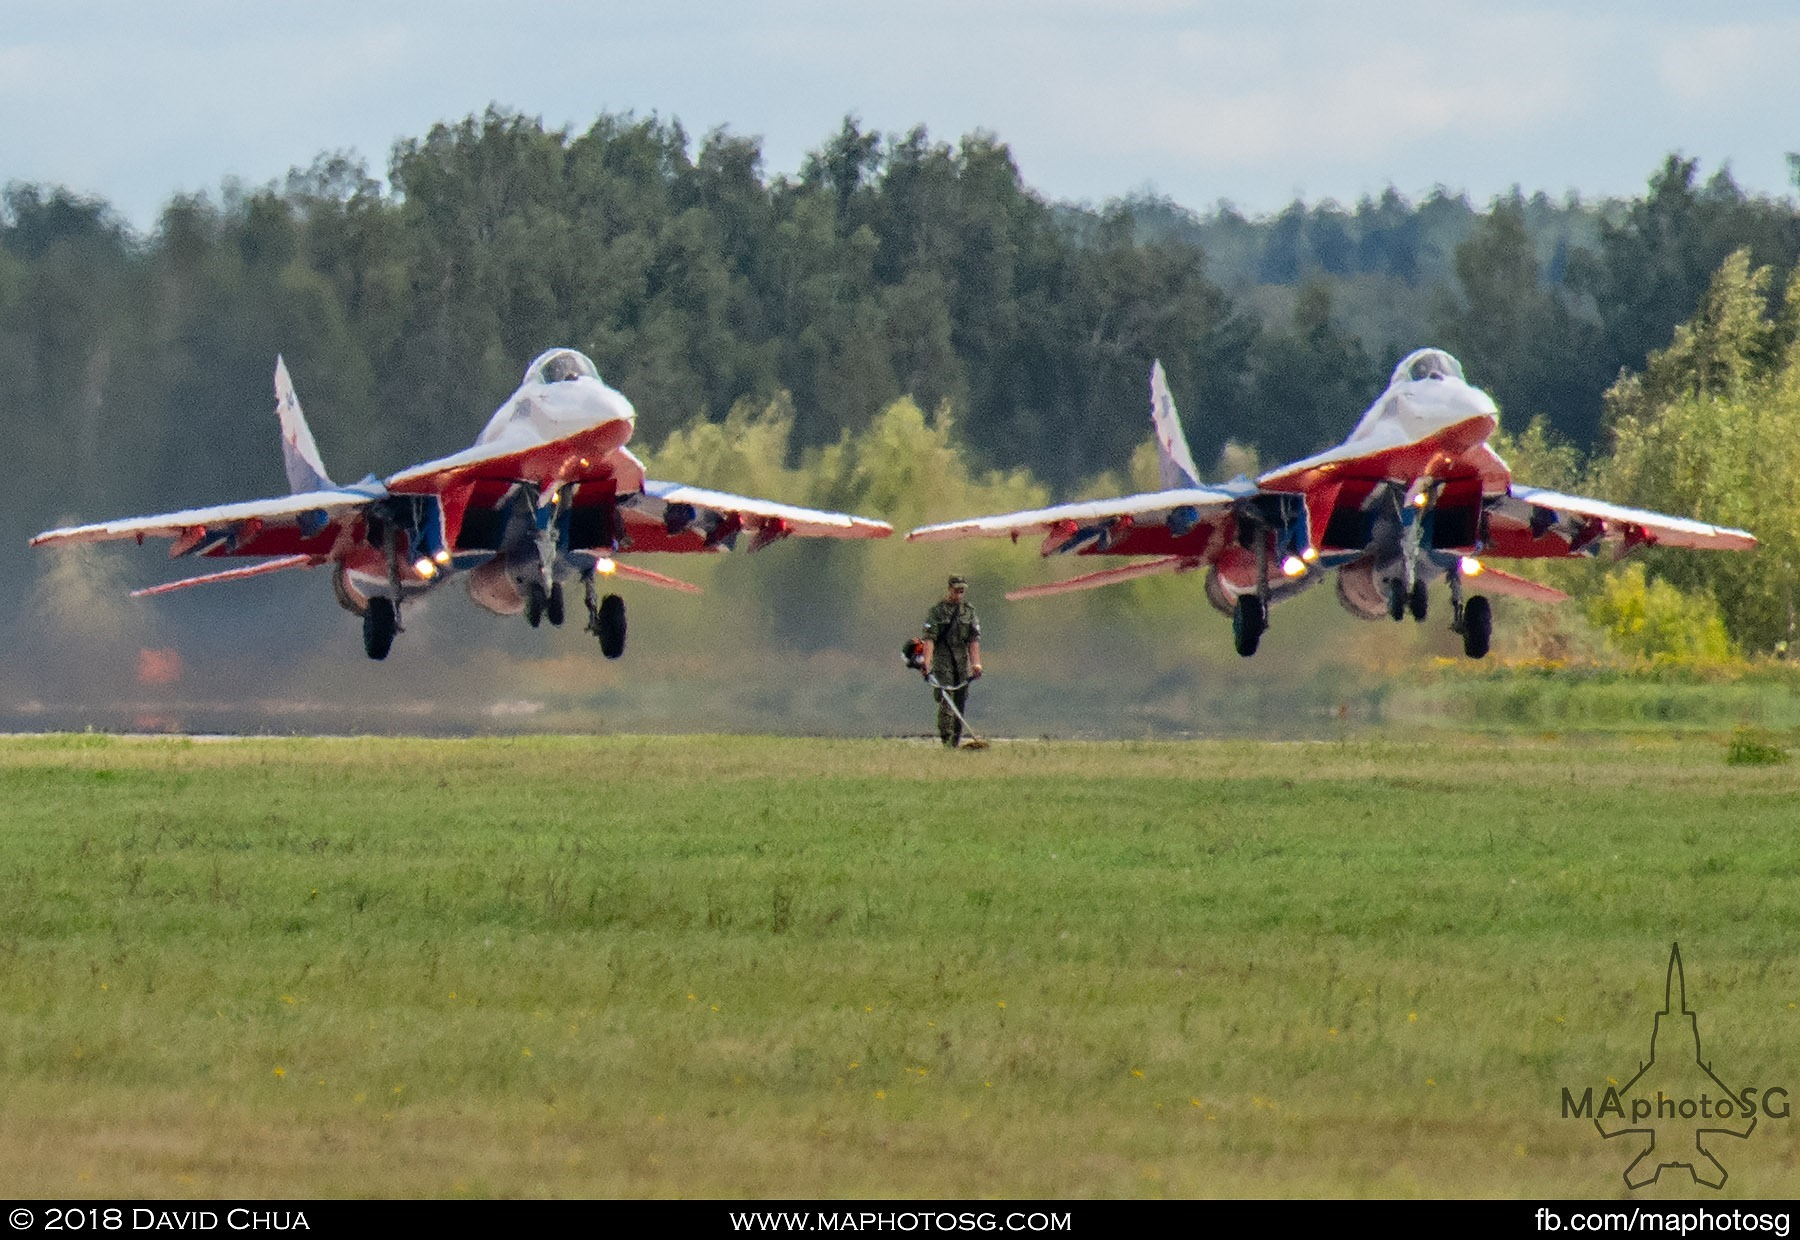 33. A soldier on grass cutting duty as a pair of MiG-29s of the Swifts Aerobatic Team takes off